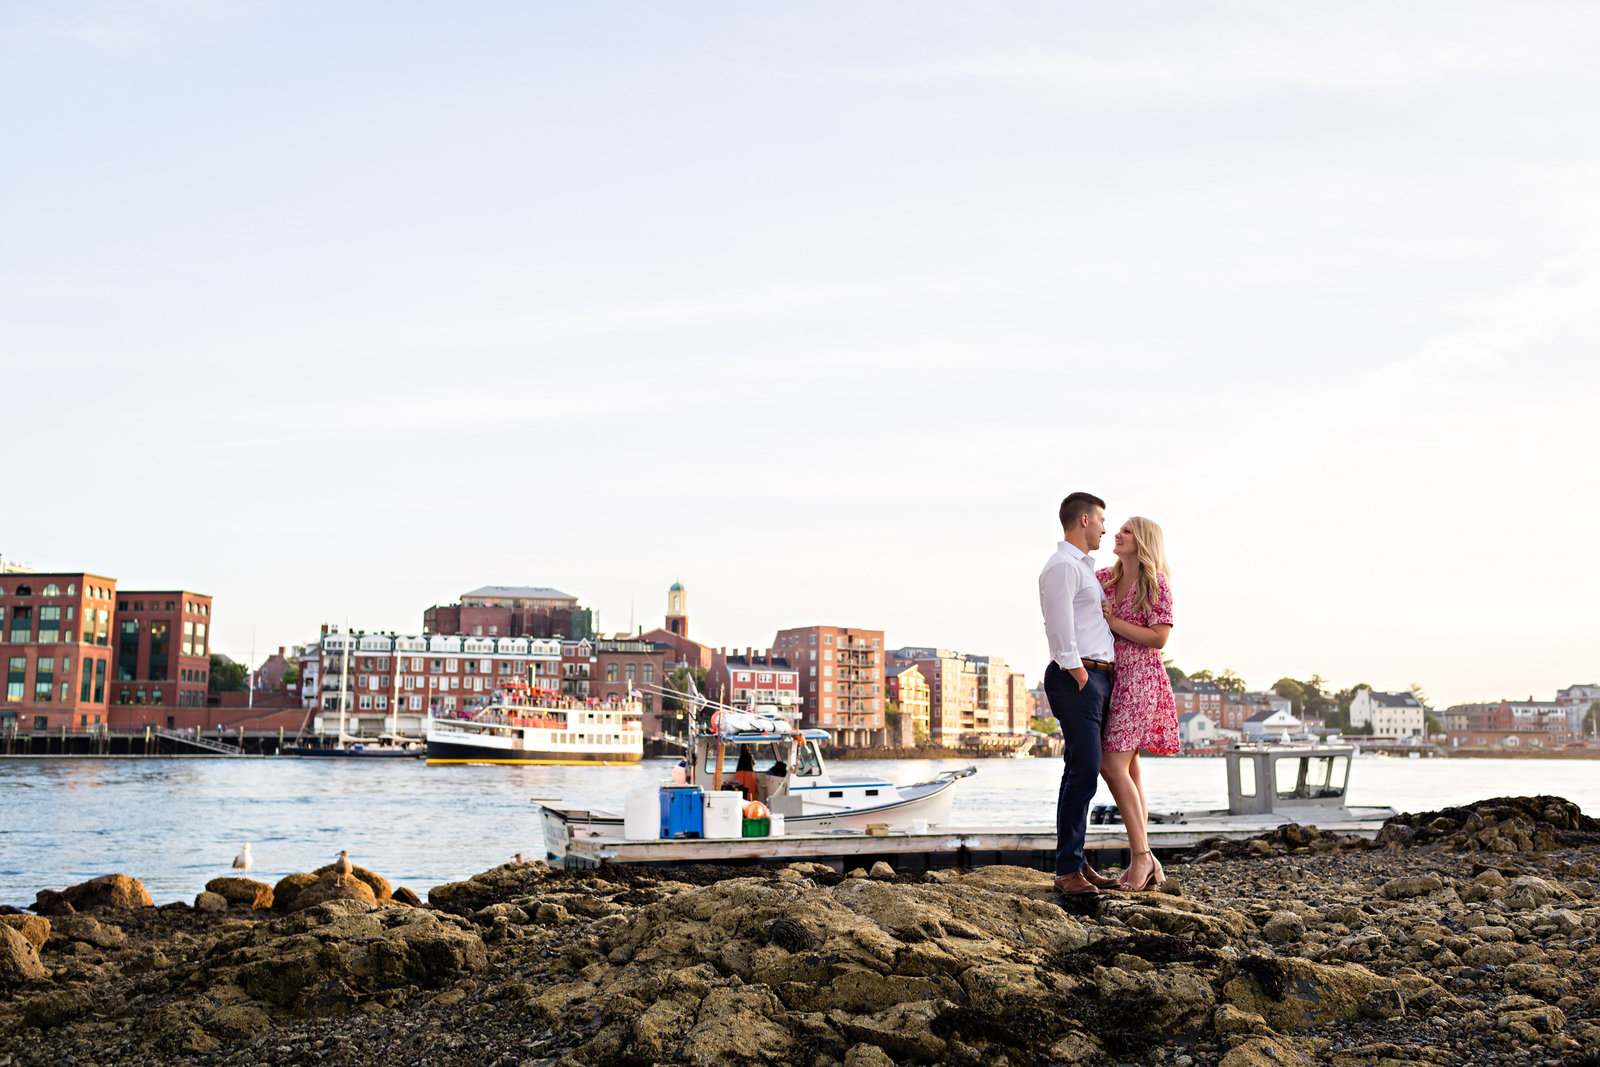 Portsmouth-New-Hampshire-Wedding-Photographers-Engagement-Beach-Boats-Brick-Outdoor-Urban-I-AM-SARAH-V-Photography-Photo